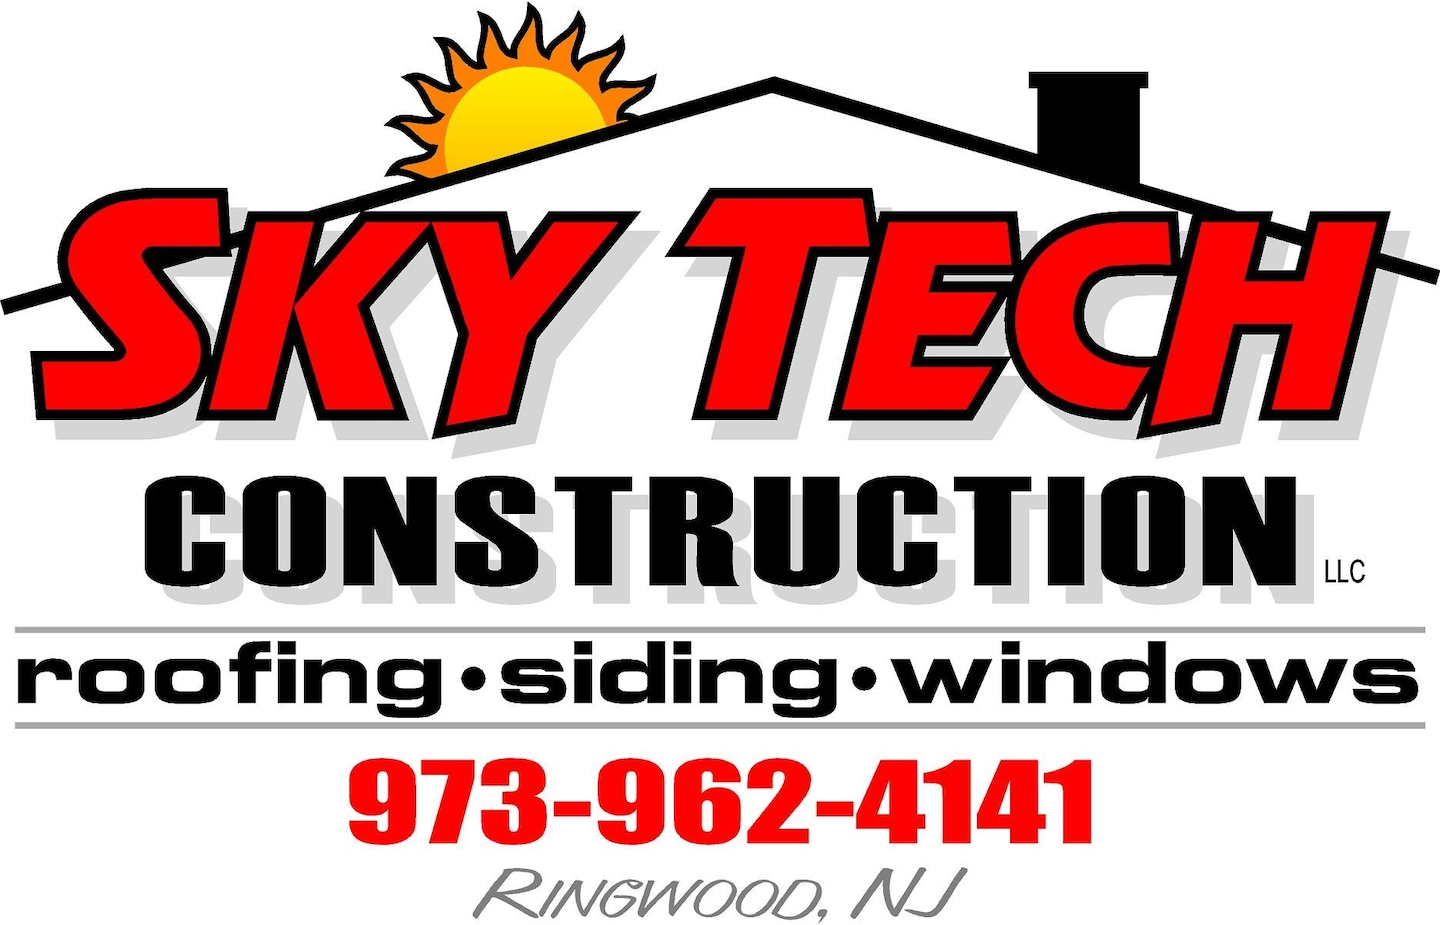 Sky Tech Construction, LLC